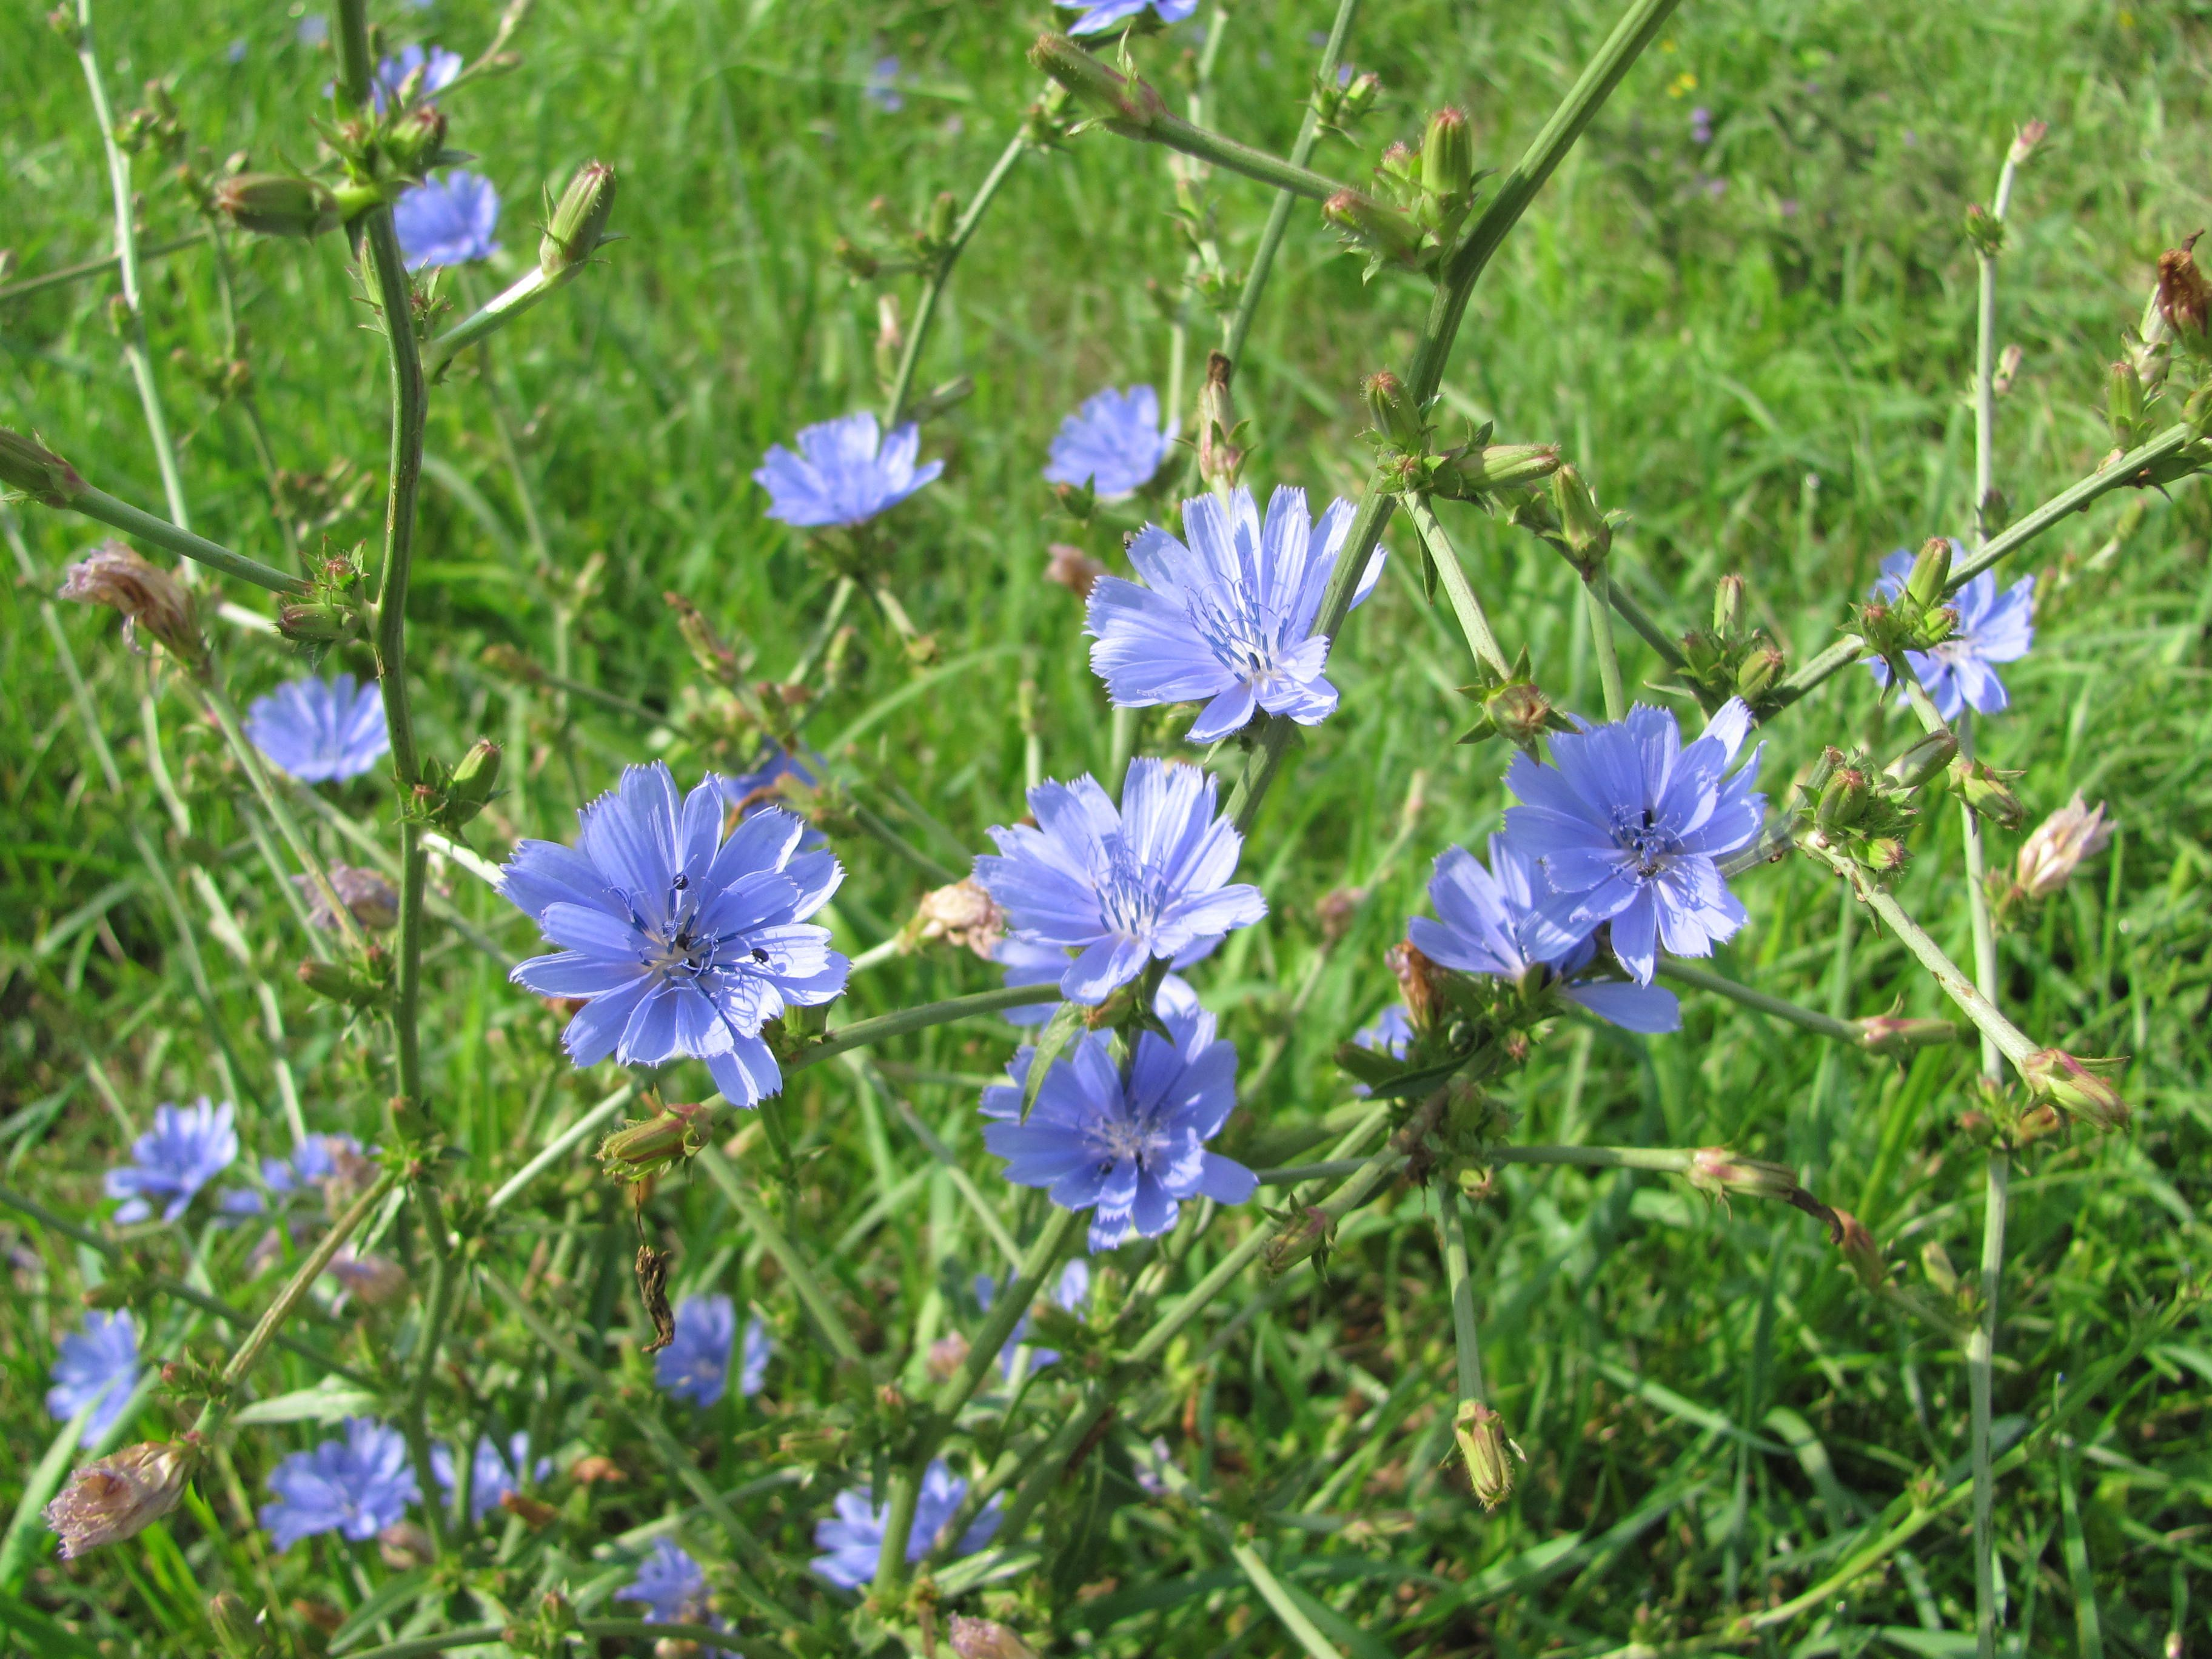 How to Identify Lawn Weed With Small Purple Flowers